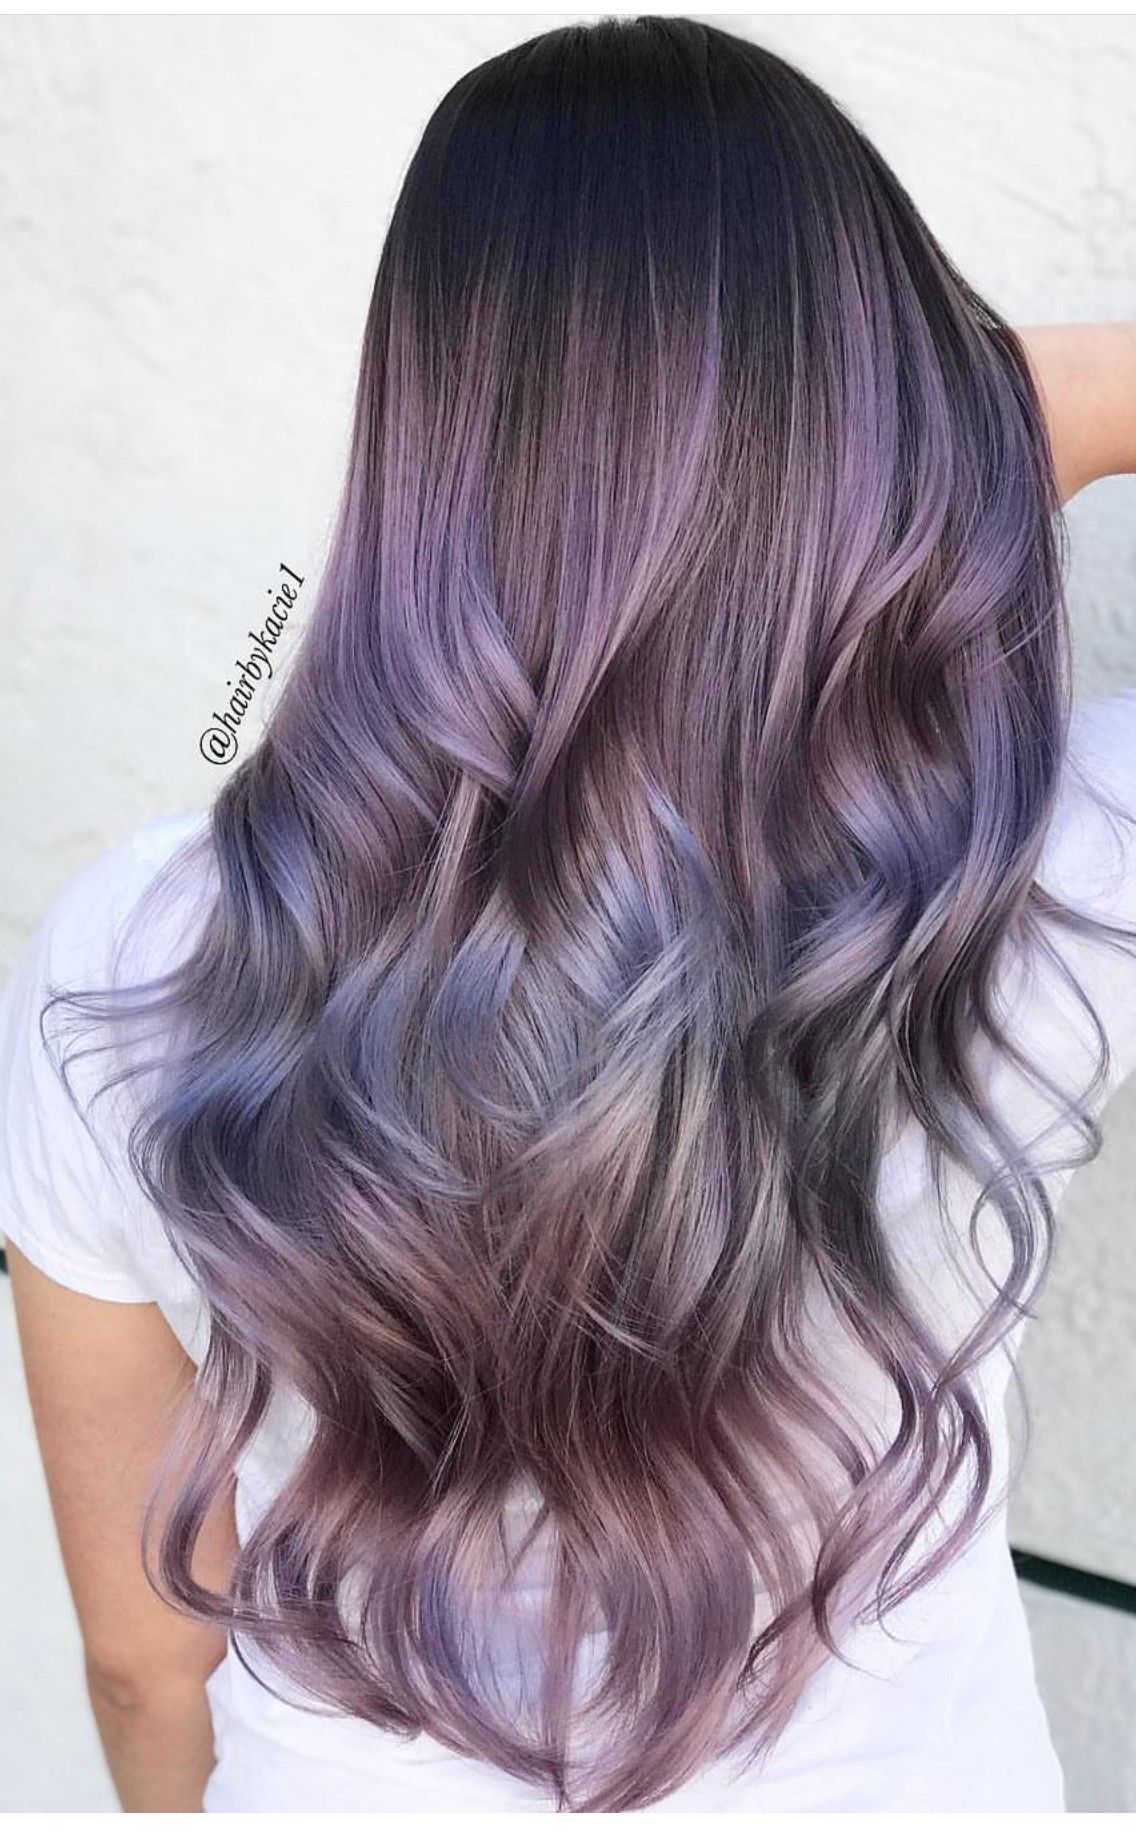 Pin By Owl Hopf On Favorites In Hair Hair Styles Hair Inspo Color Lilac Hair